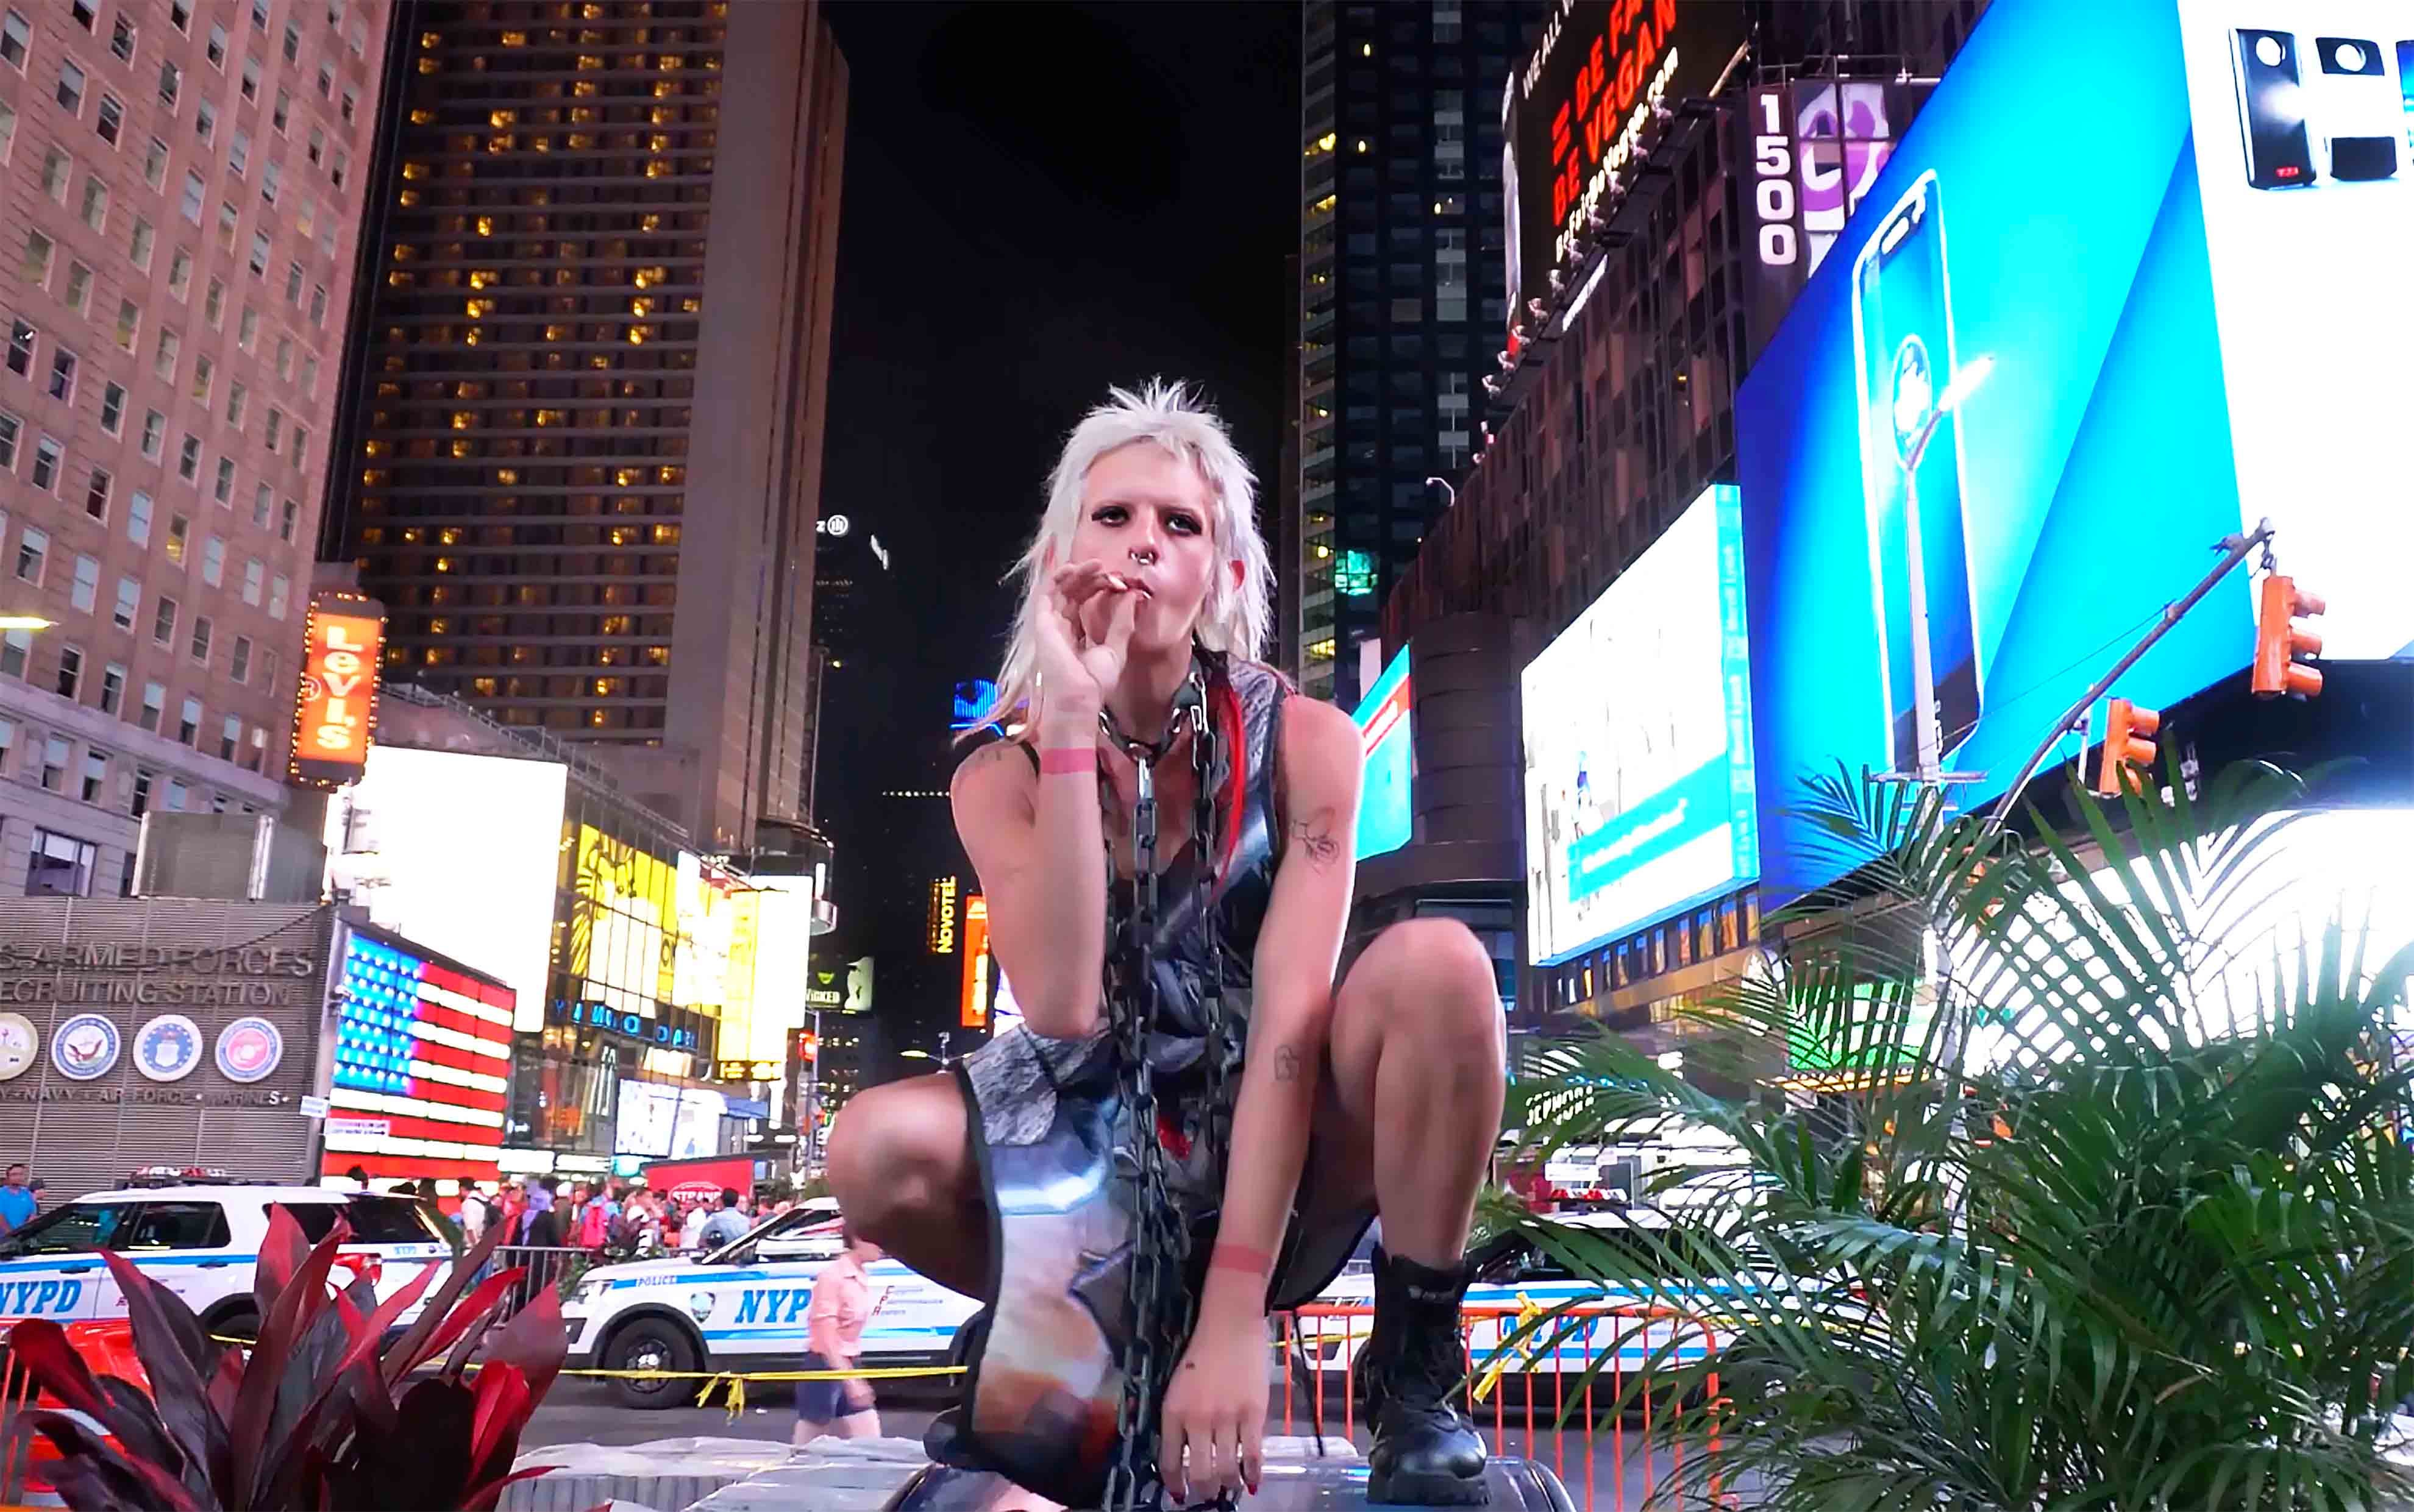 Rampleman, Rachel - LACTIC Incorporated, Times Square (Belle Darling), 2016, video still.jpg